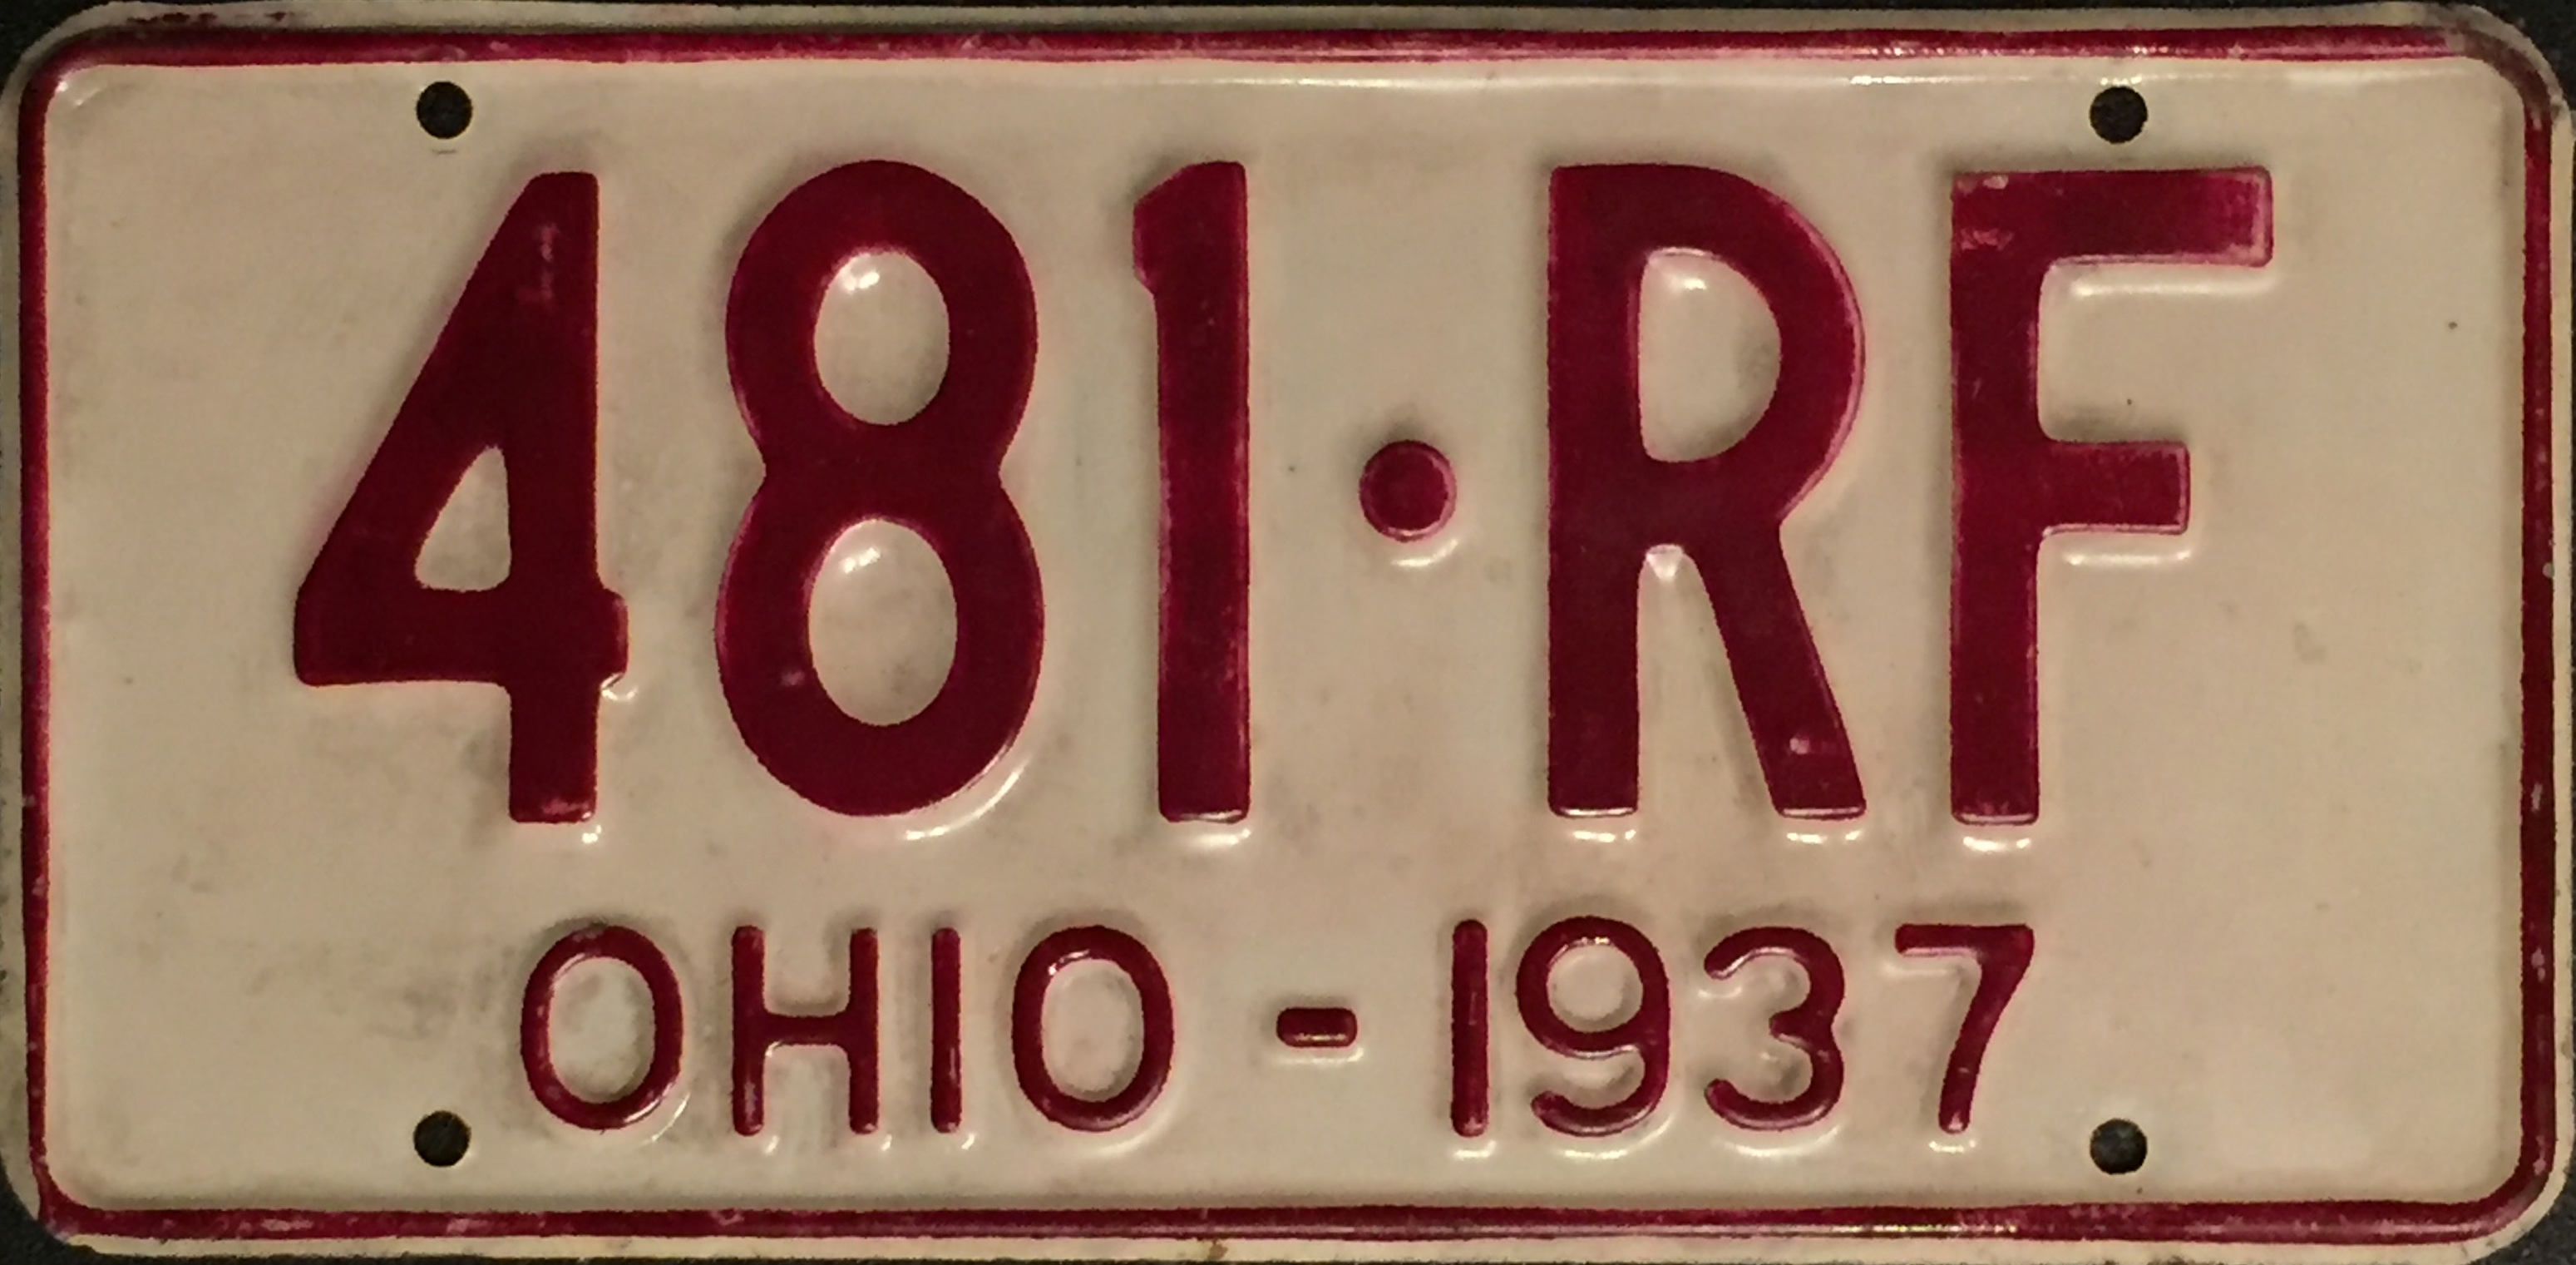 File:1937 Ohio license plate.JPG - Wikimedia Commons